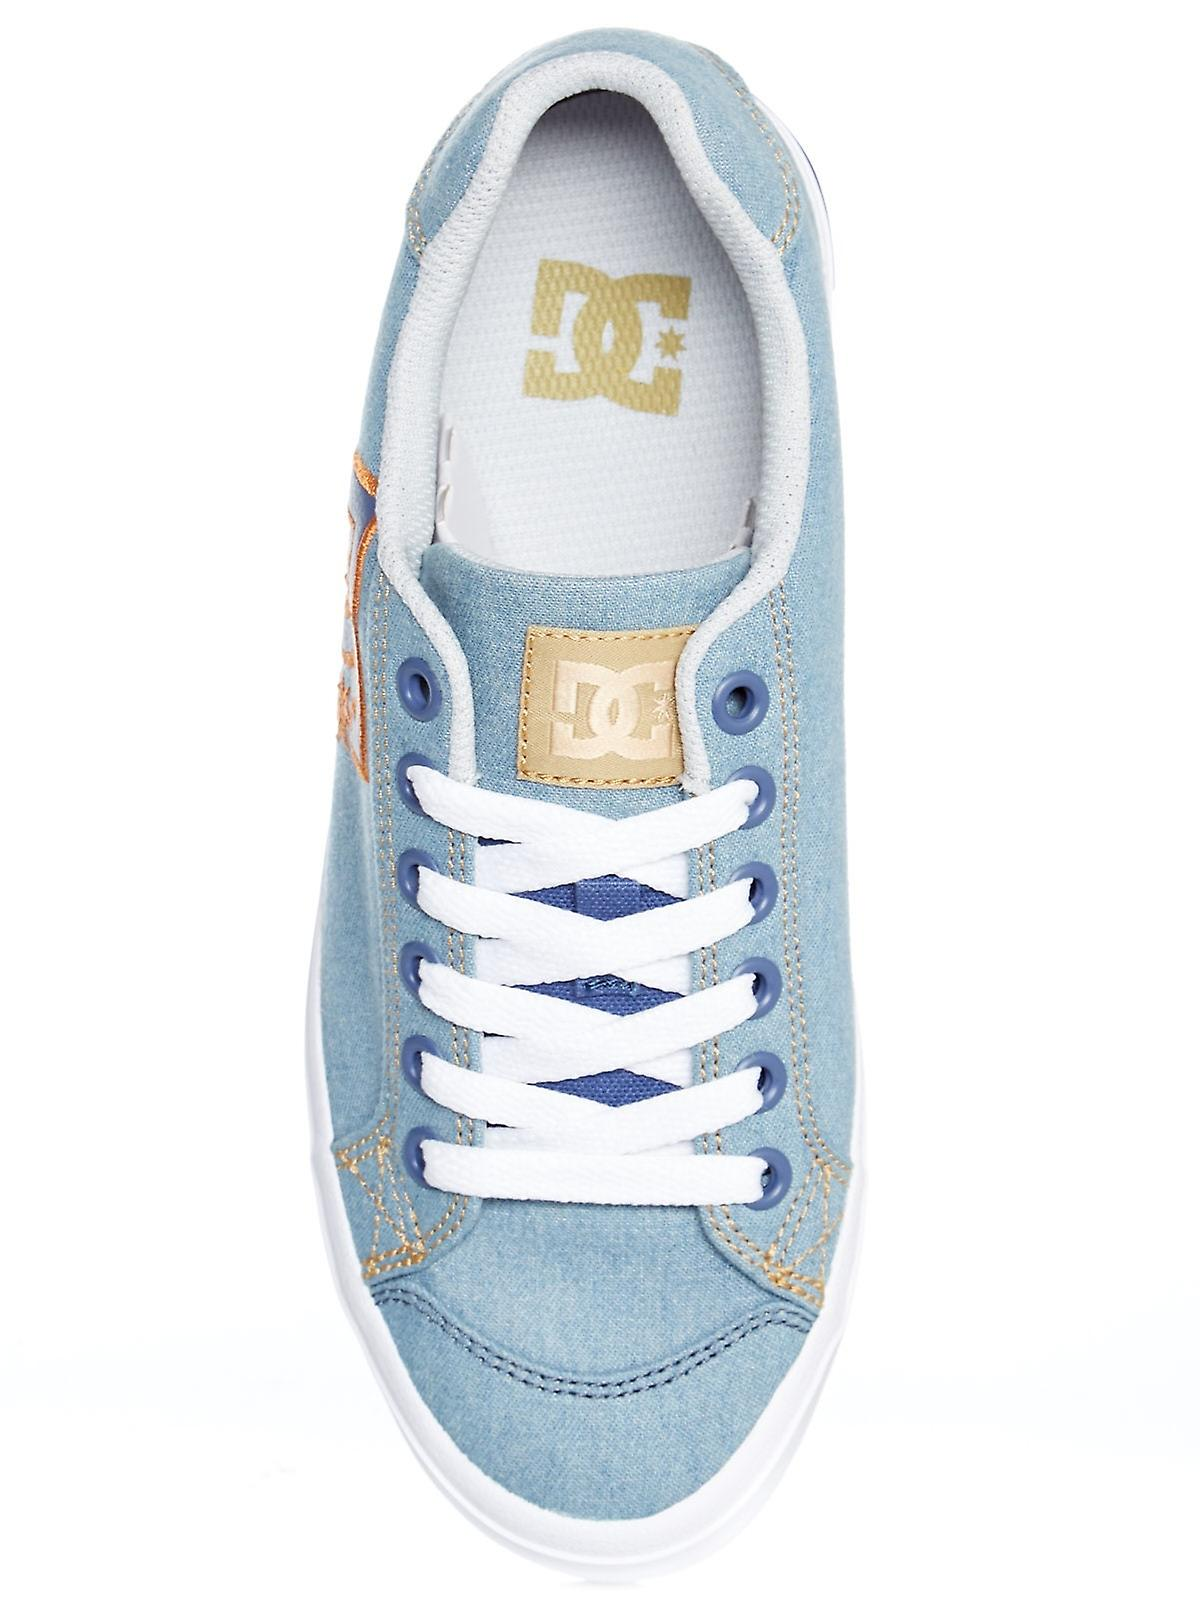 DC Denim Chelsea Plus TX SE Womens Low Top Shoe